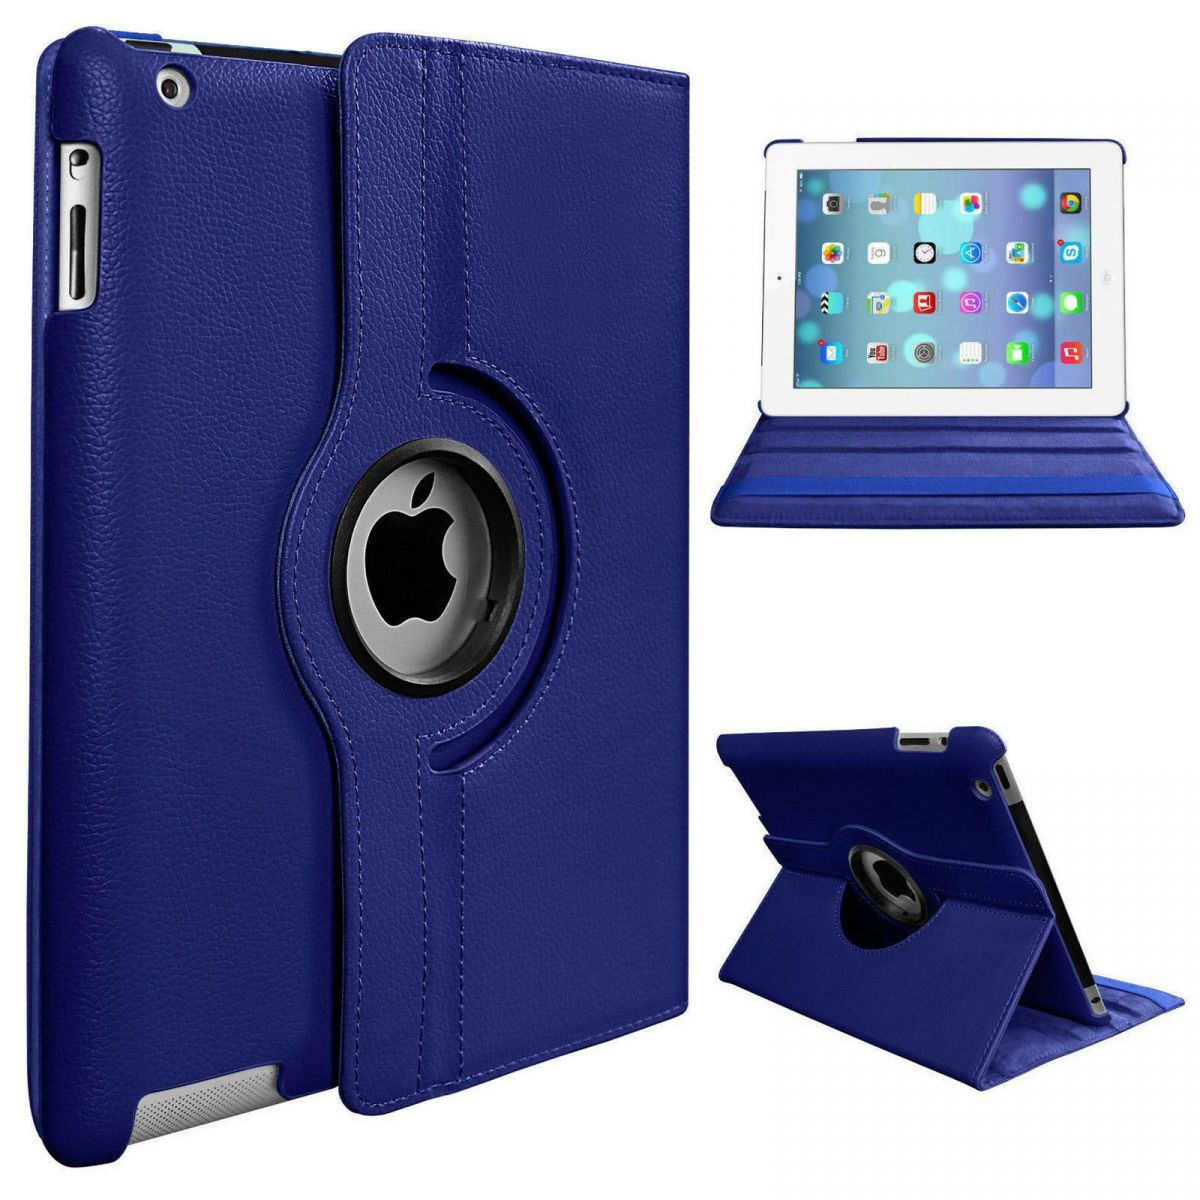 Leather 360 Rotating Smart Case iPad 2/3/4 Cover